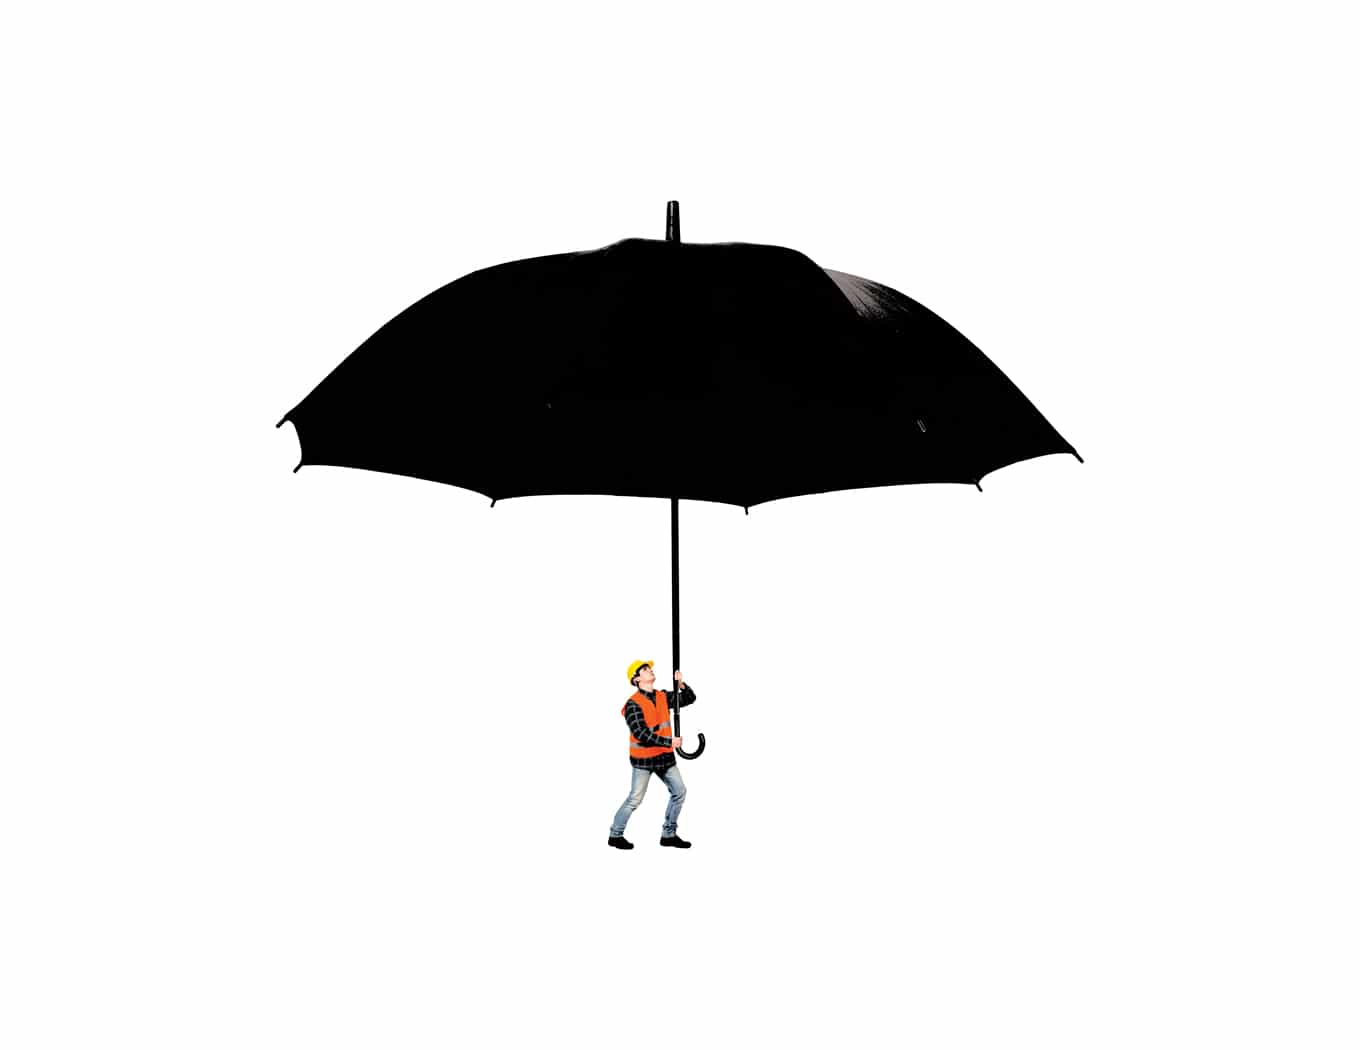 Constructor holding a big black umbrella